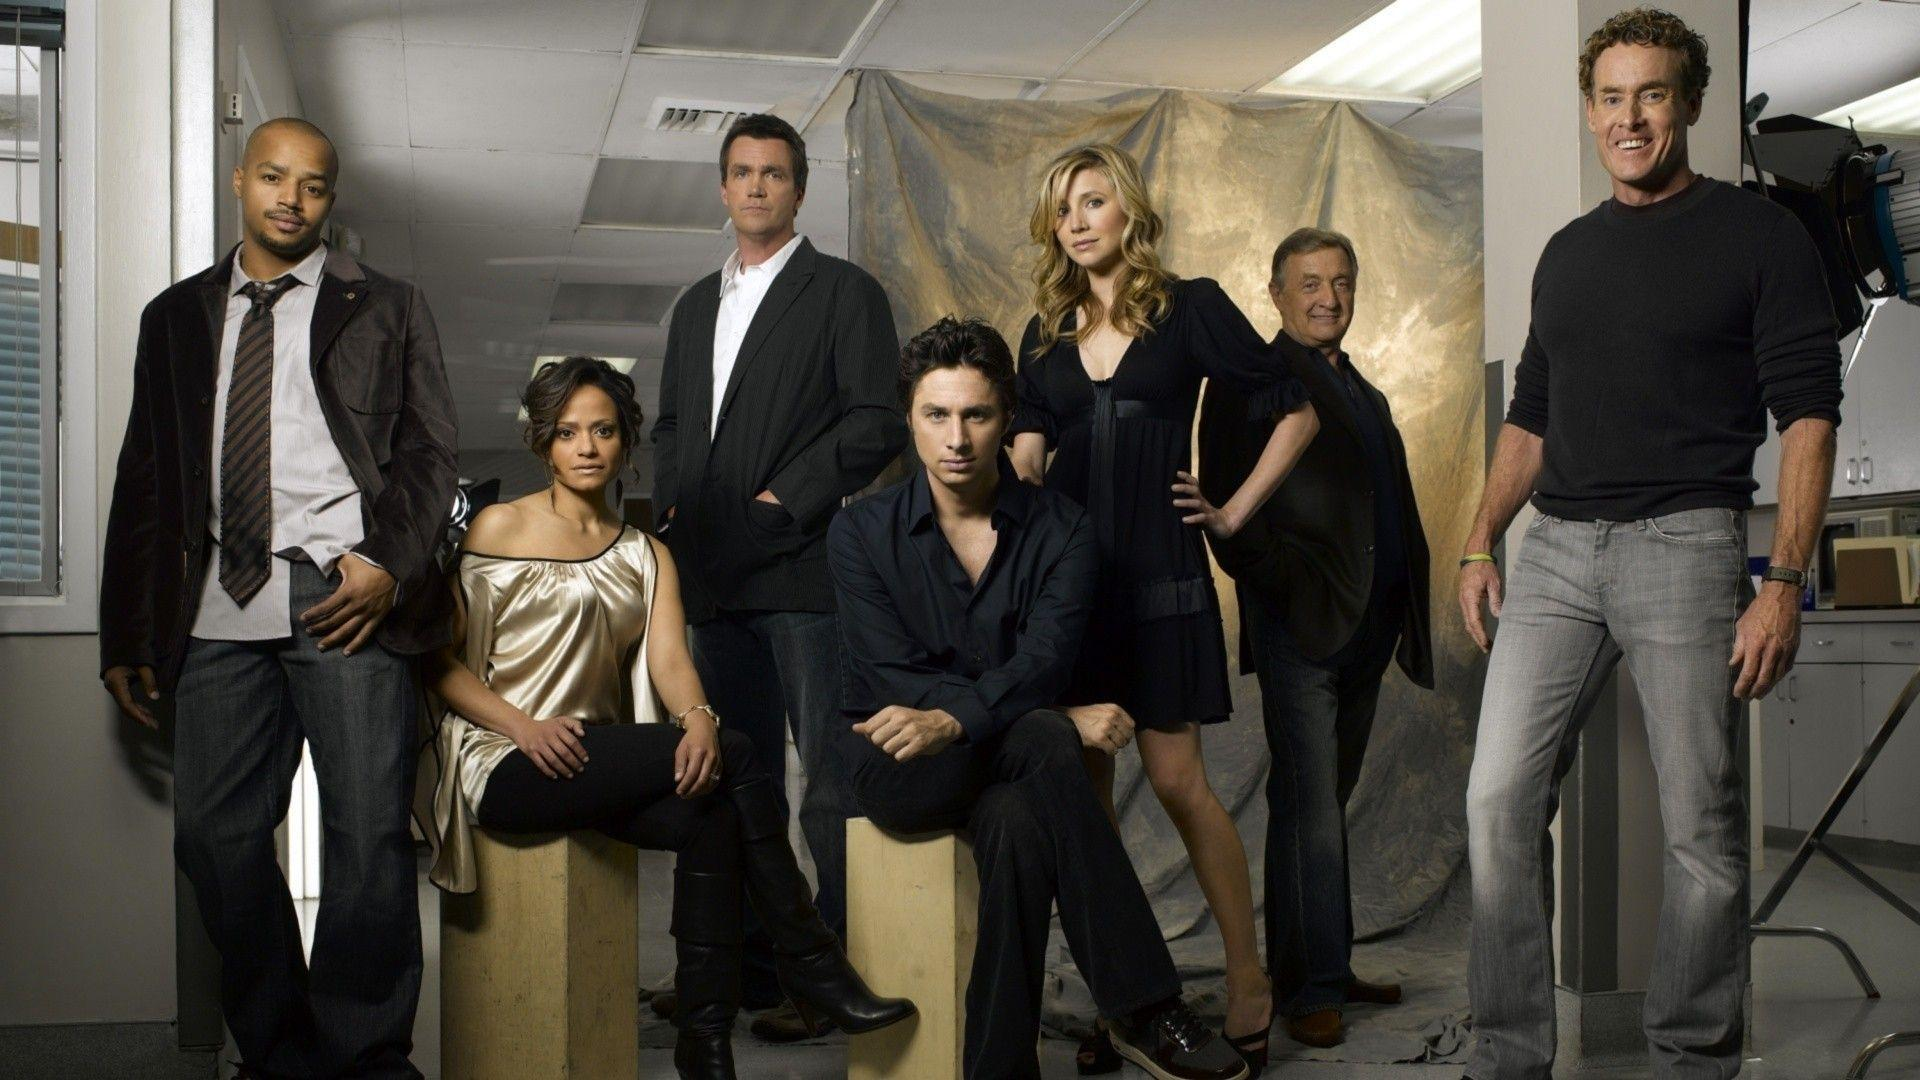 Scrubs Wallpapers, Pictures, Image